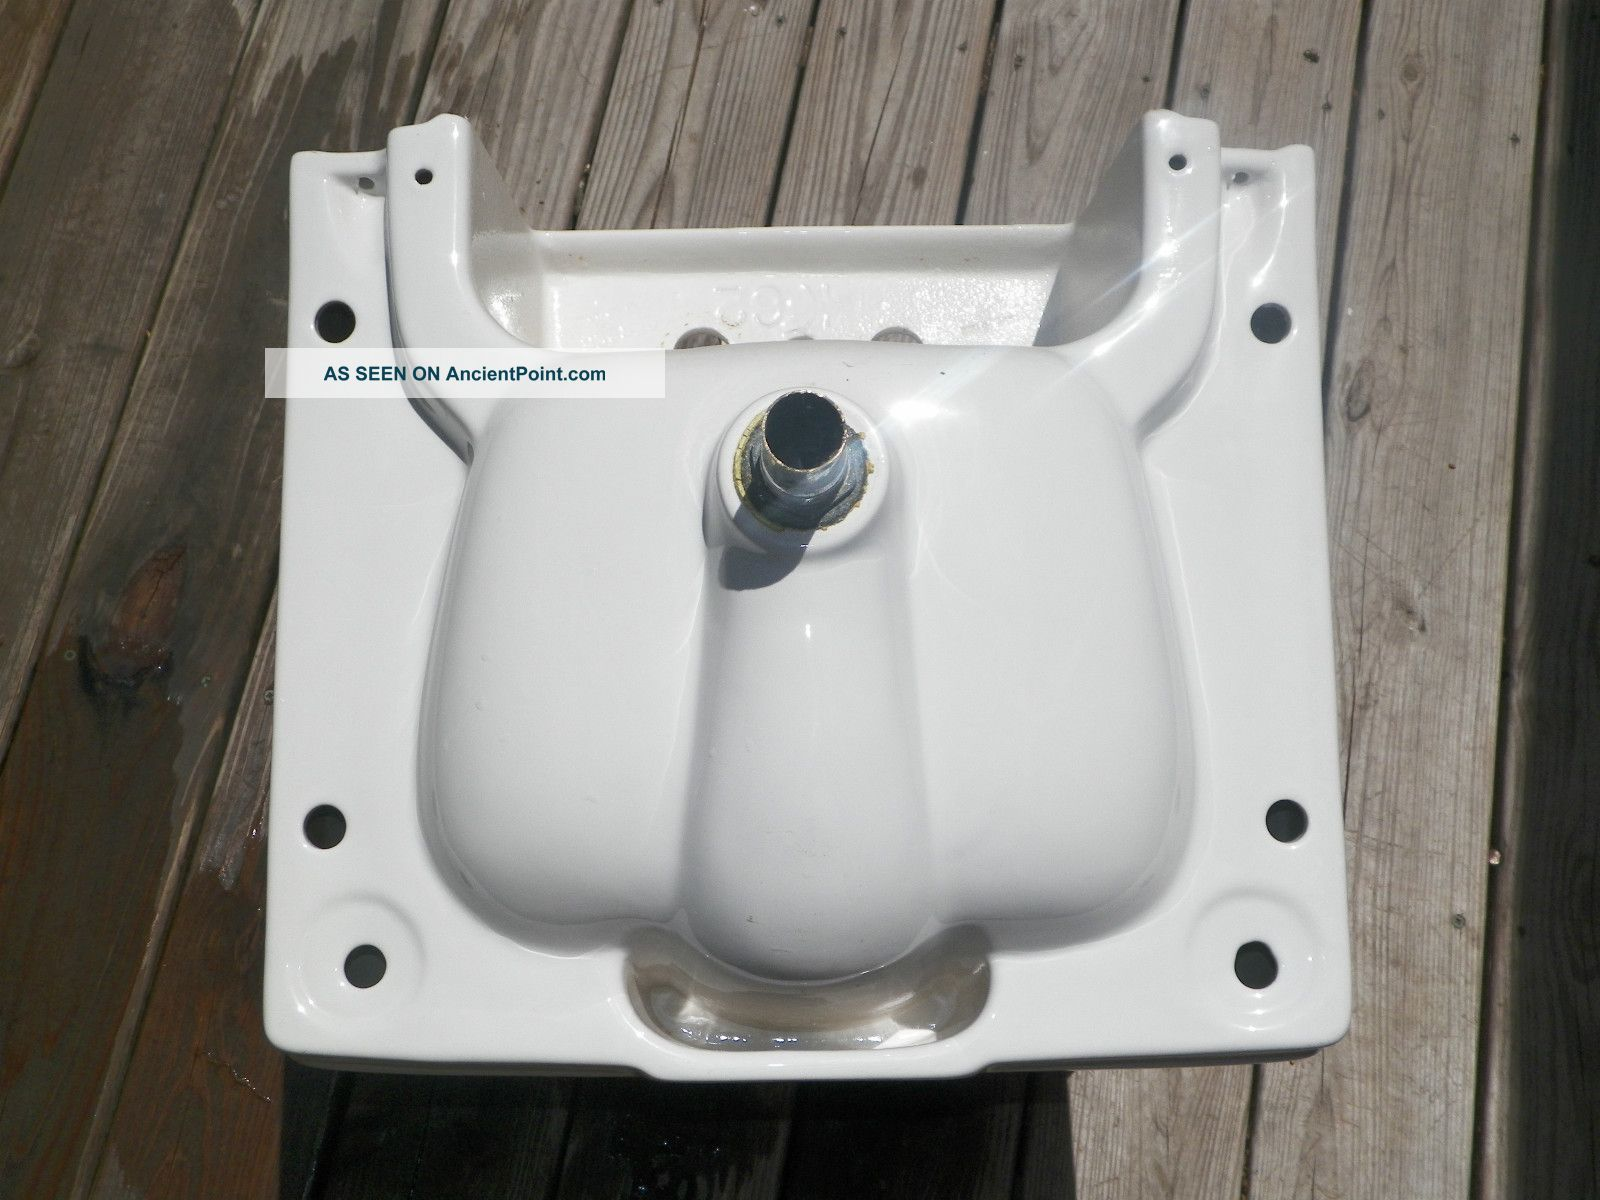 ... Gerber Wall Mount Porcelain Sink With Mounting Bracket. Sinks photo 4